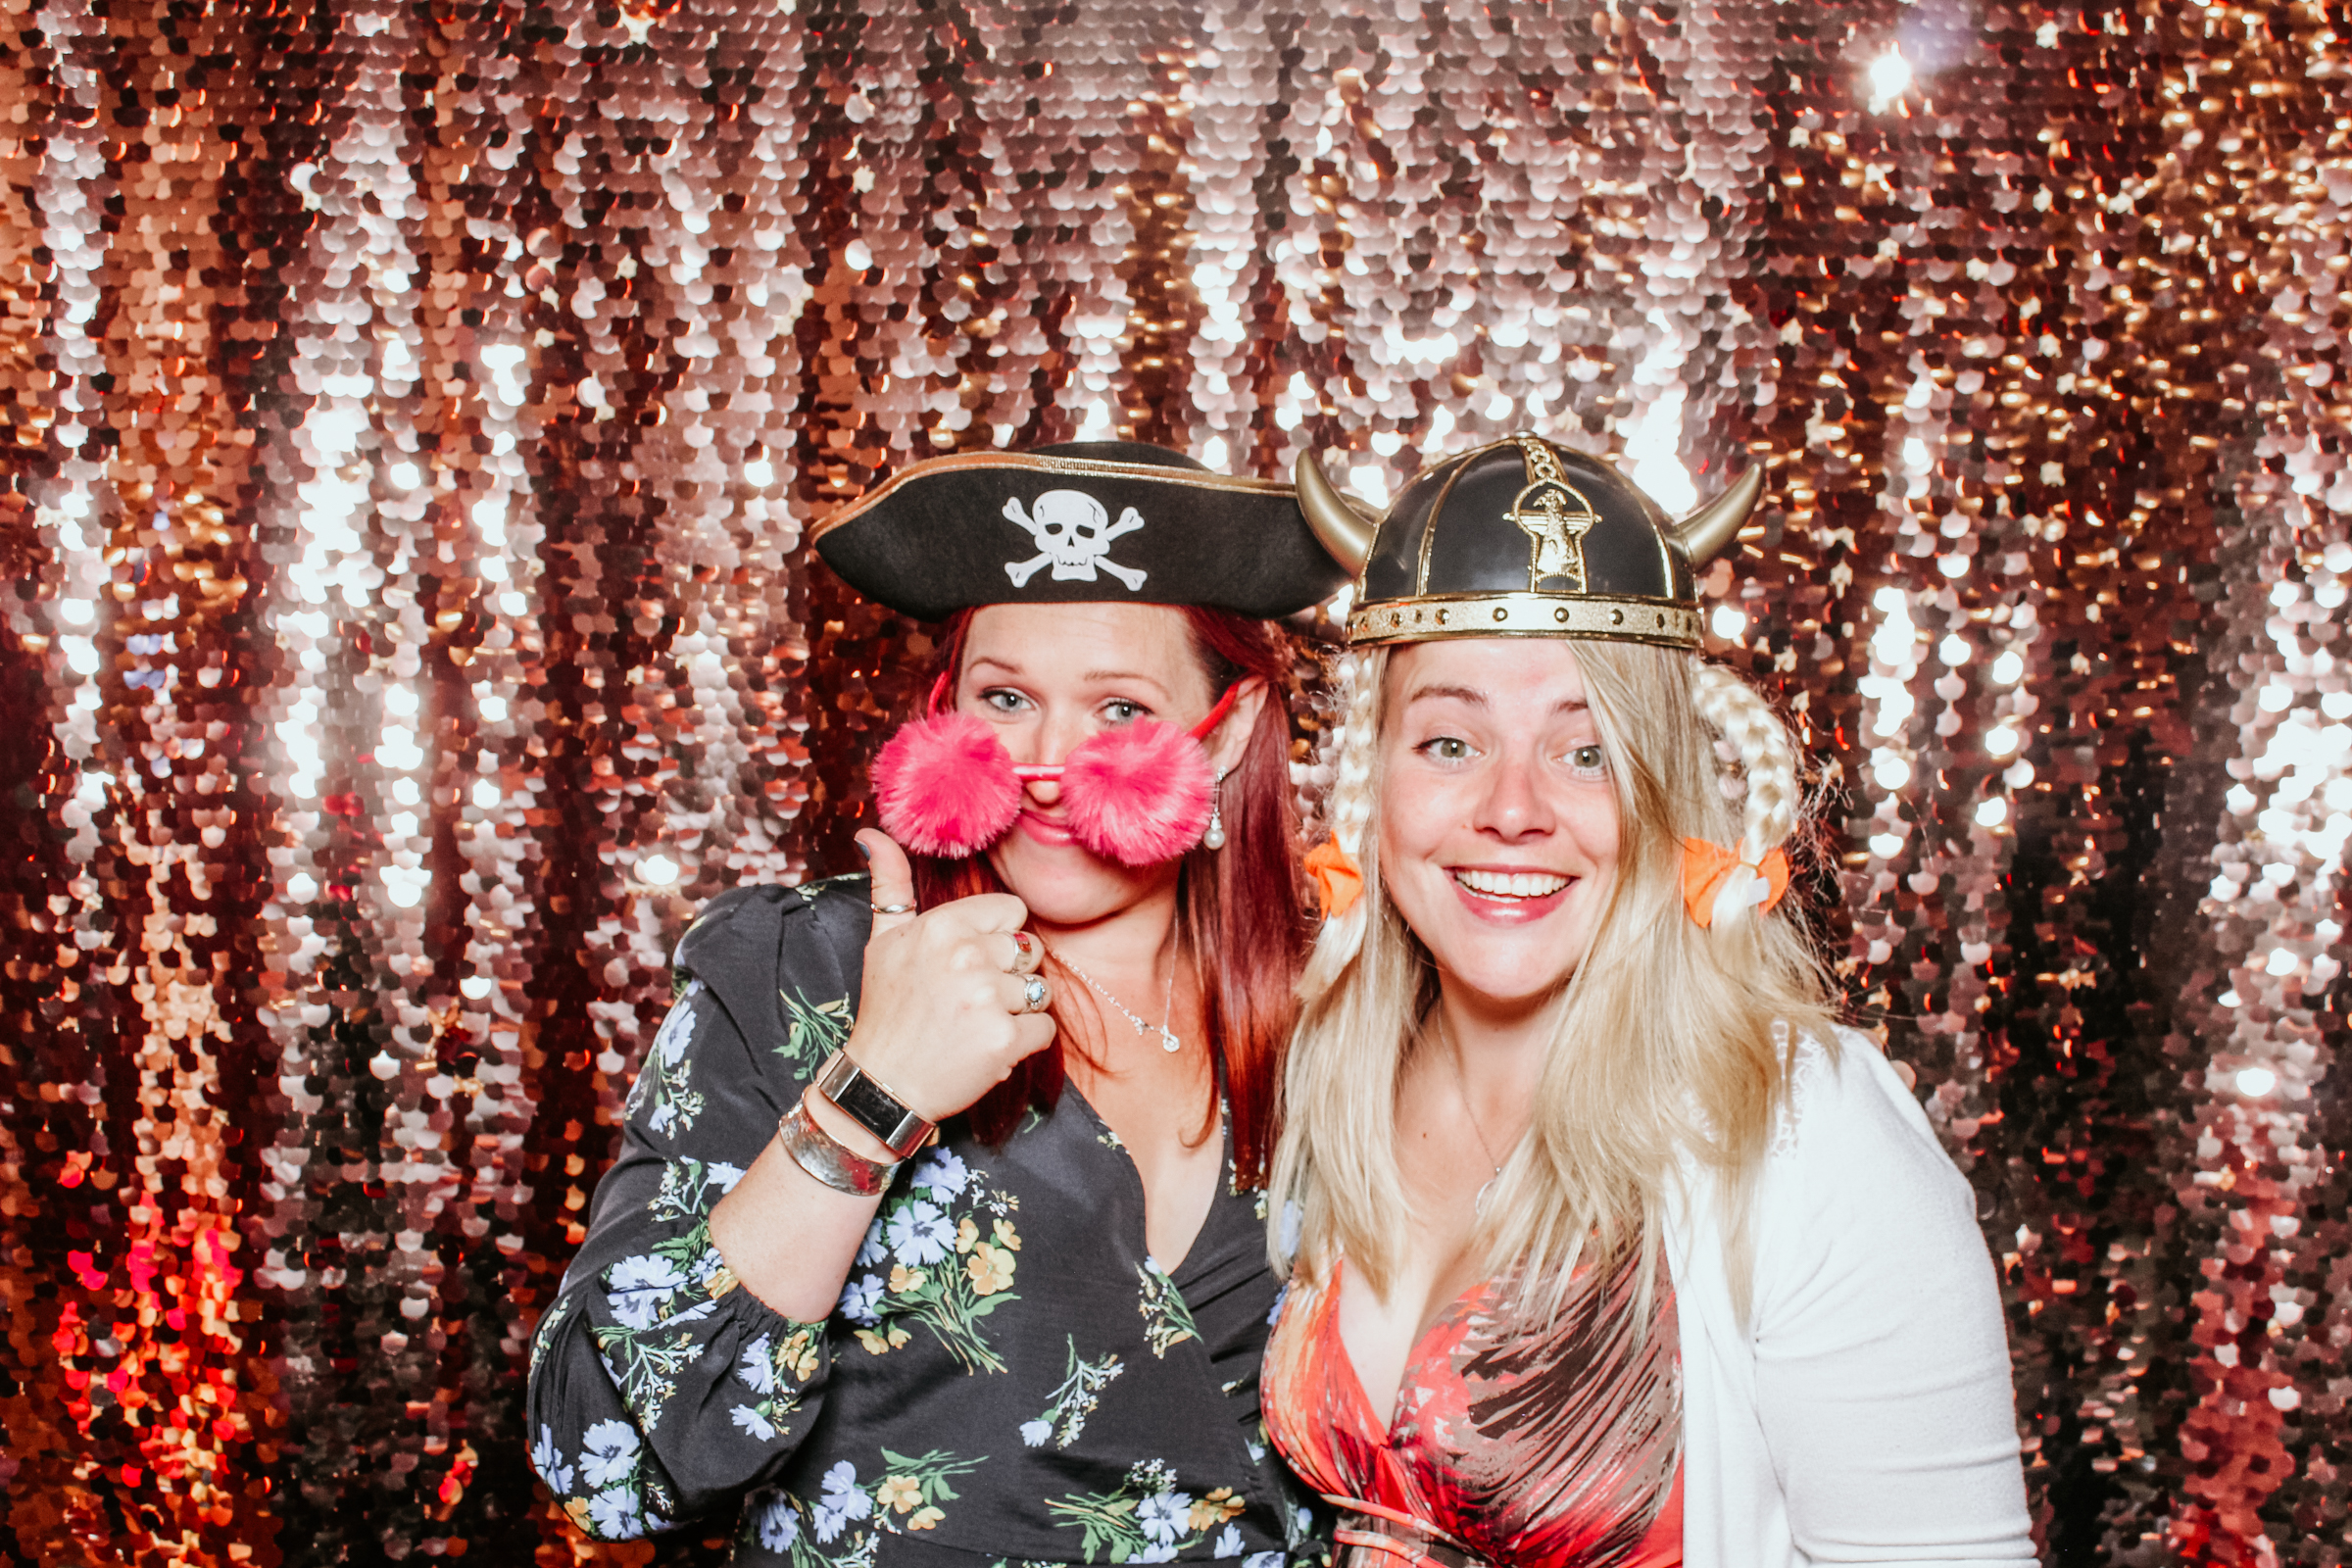 clearwell castle wedding photo booth entertainment